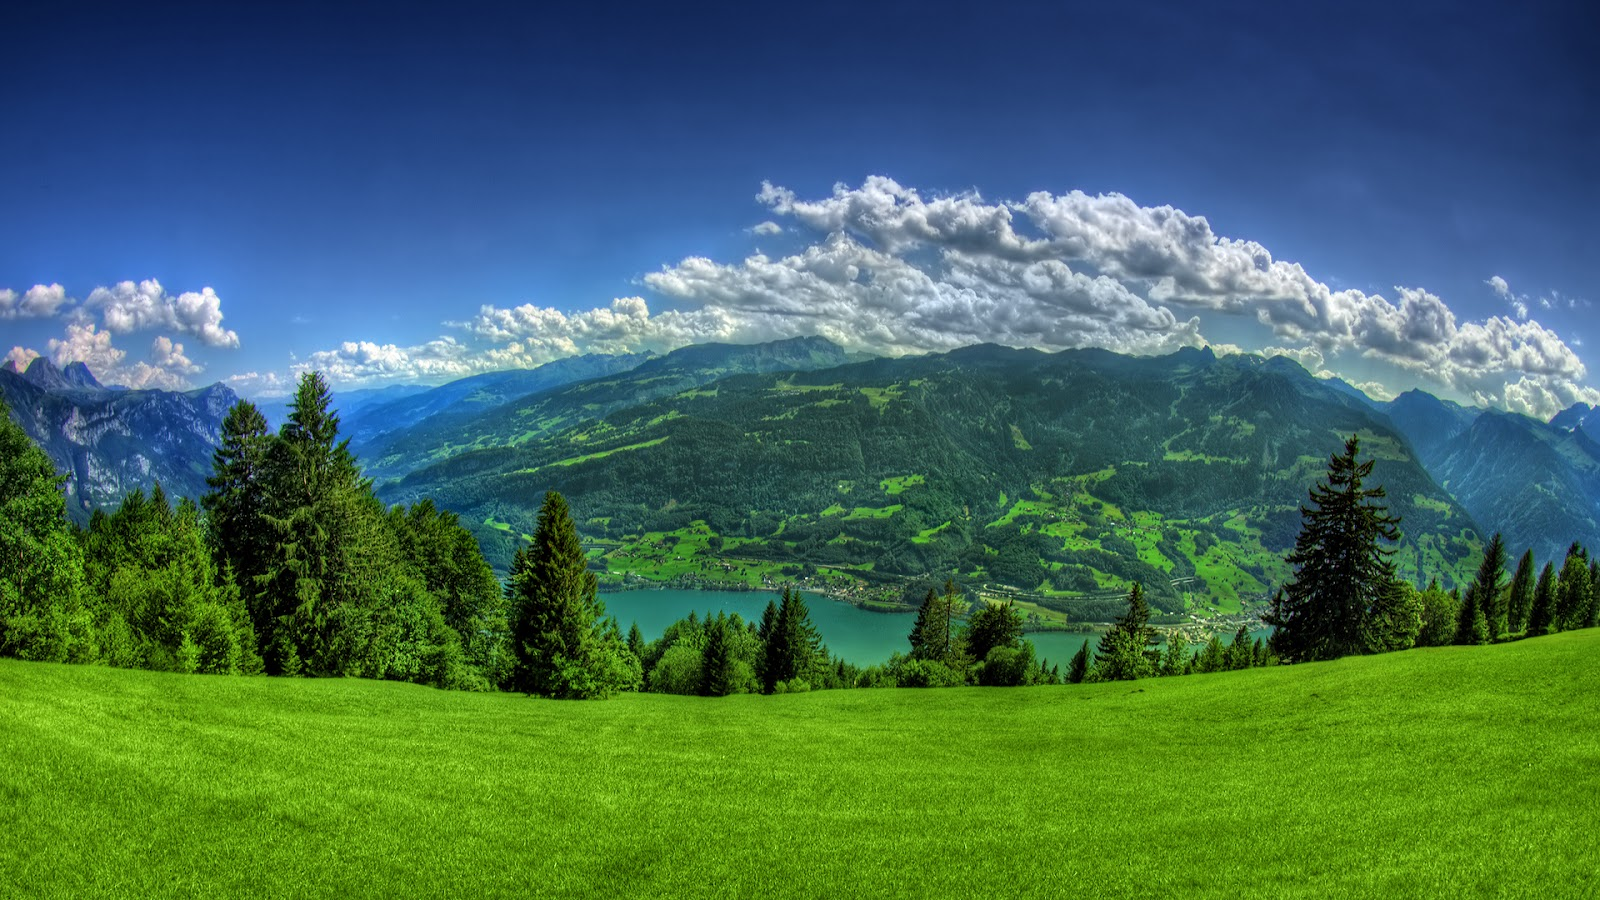 Lush Green Grass Mountain Full HD Nature Background Wallpapers 1600x900